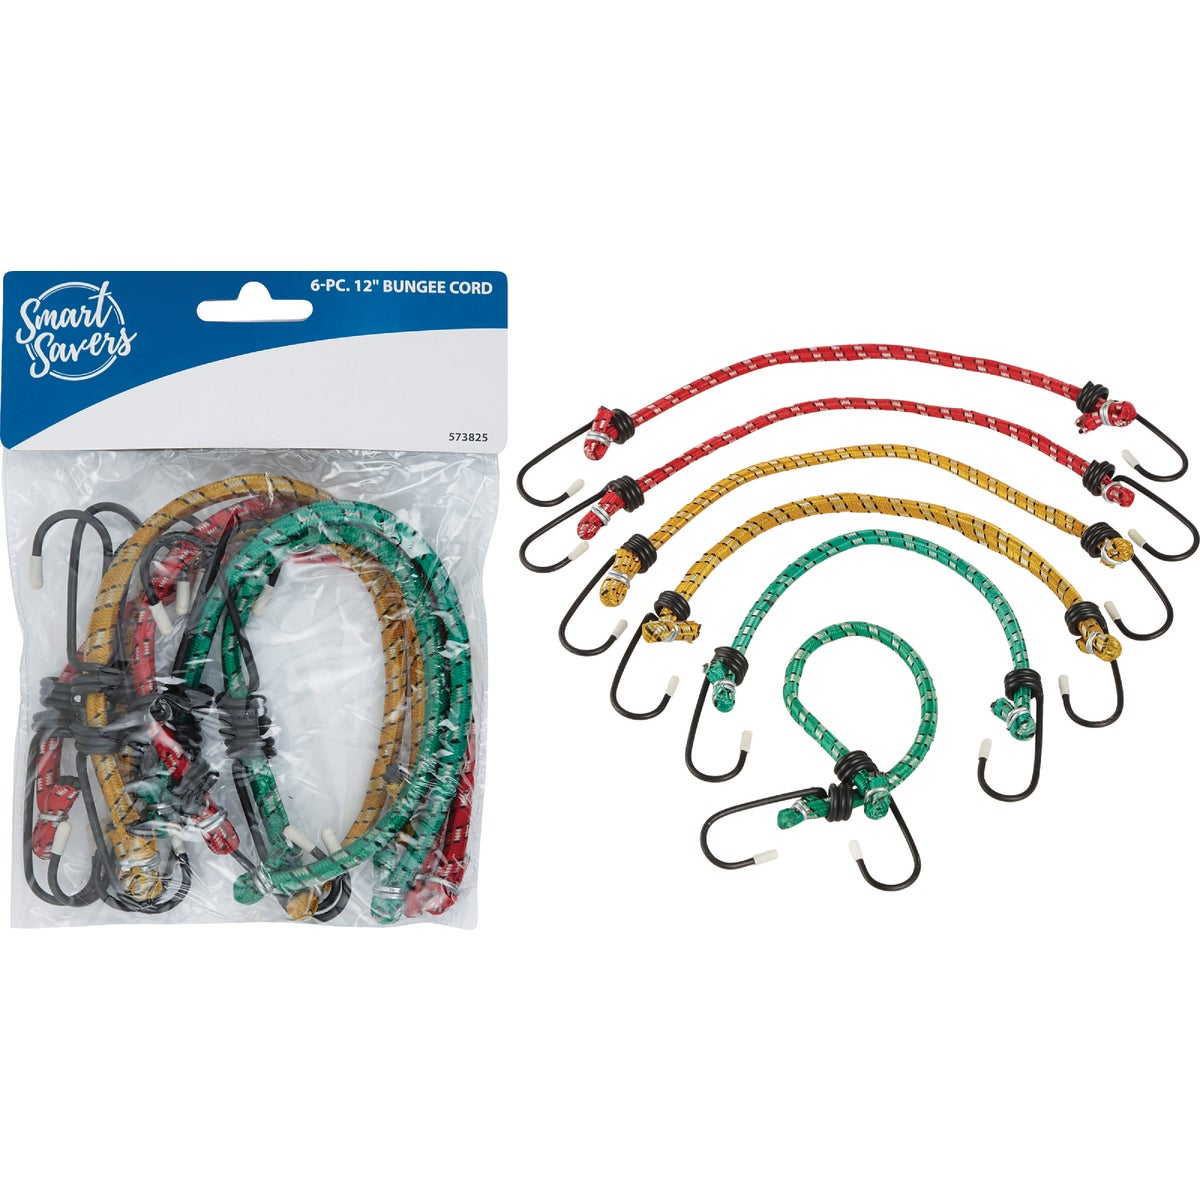 "6PC 12"" BUNGEE CORD - CC101085 by Do it Best"